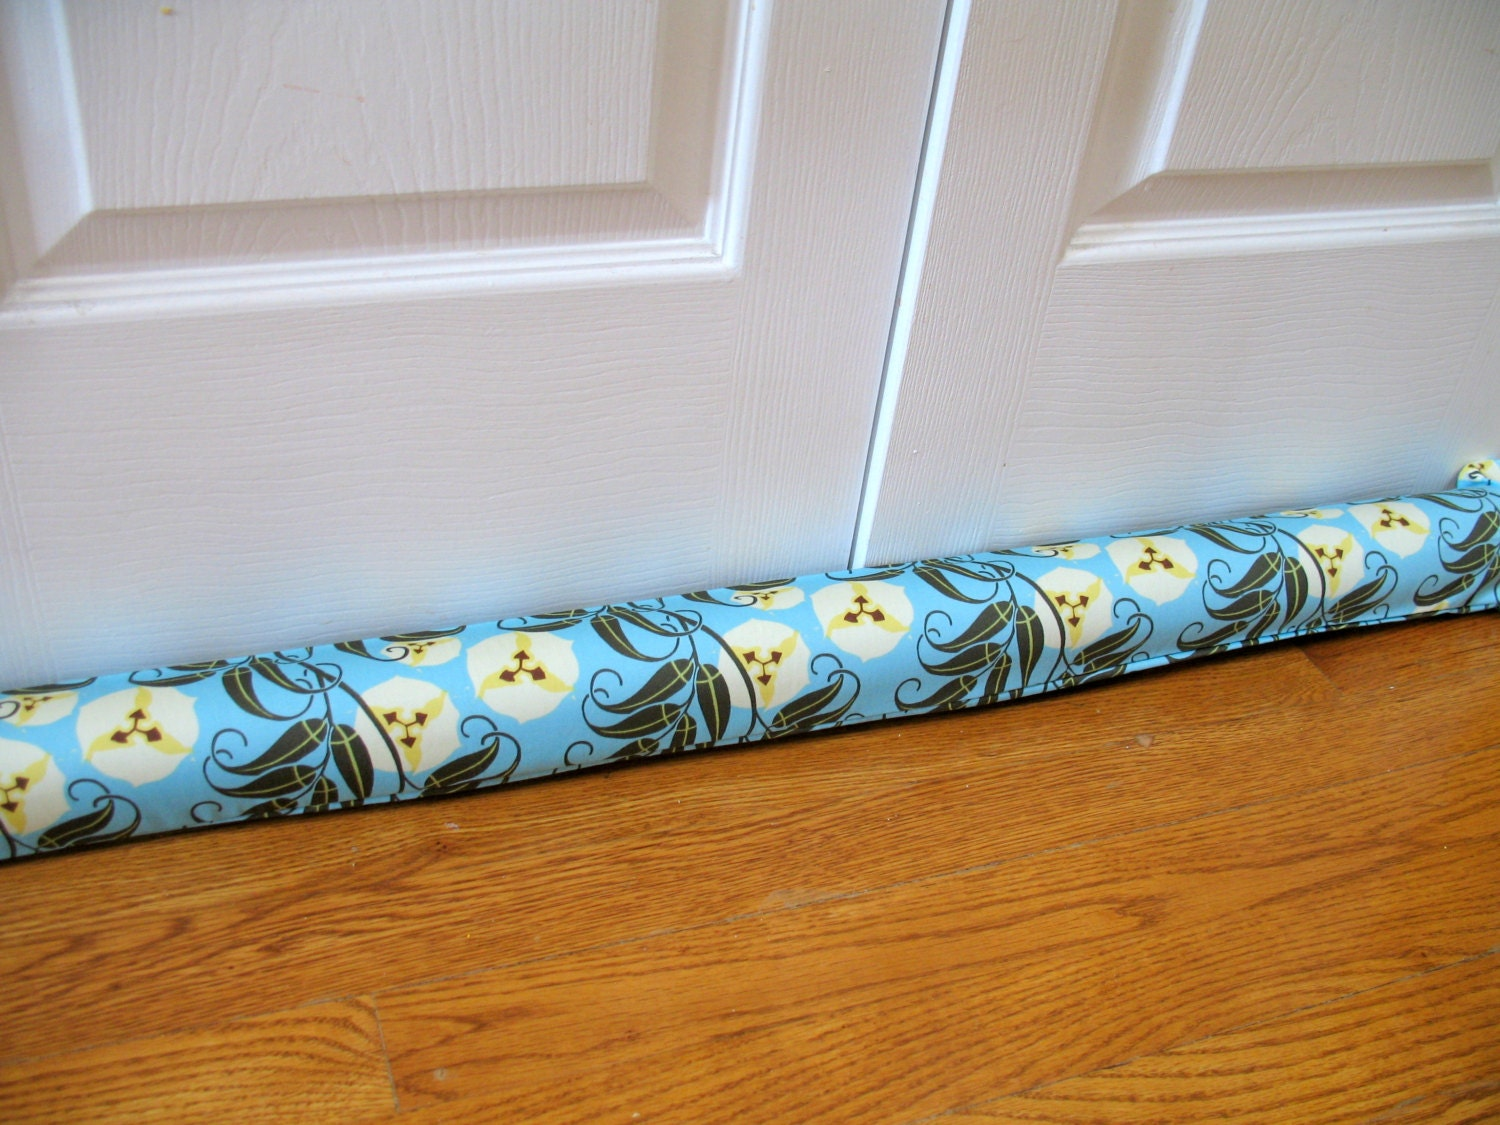 Door draft stopper draft snake dodger modern by for Door draft stopper